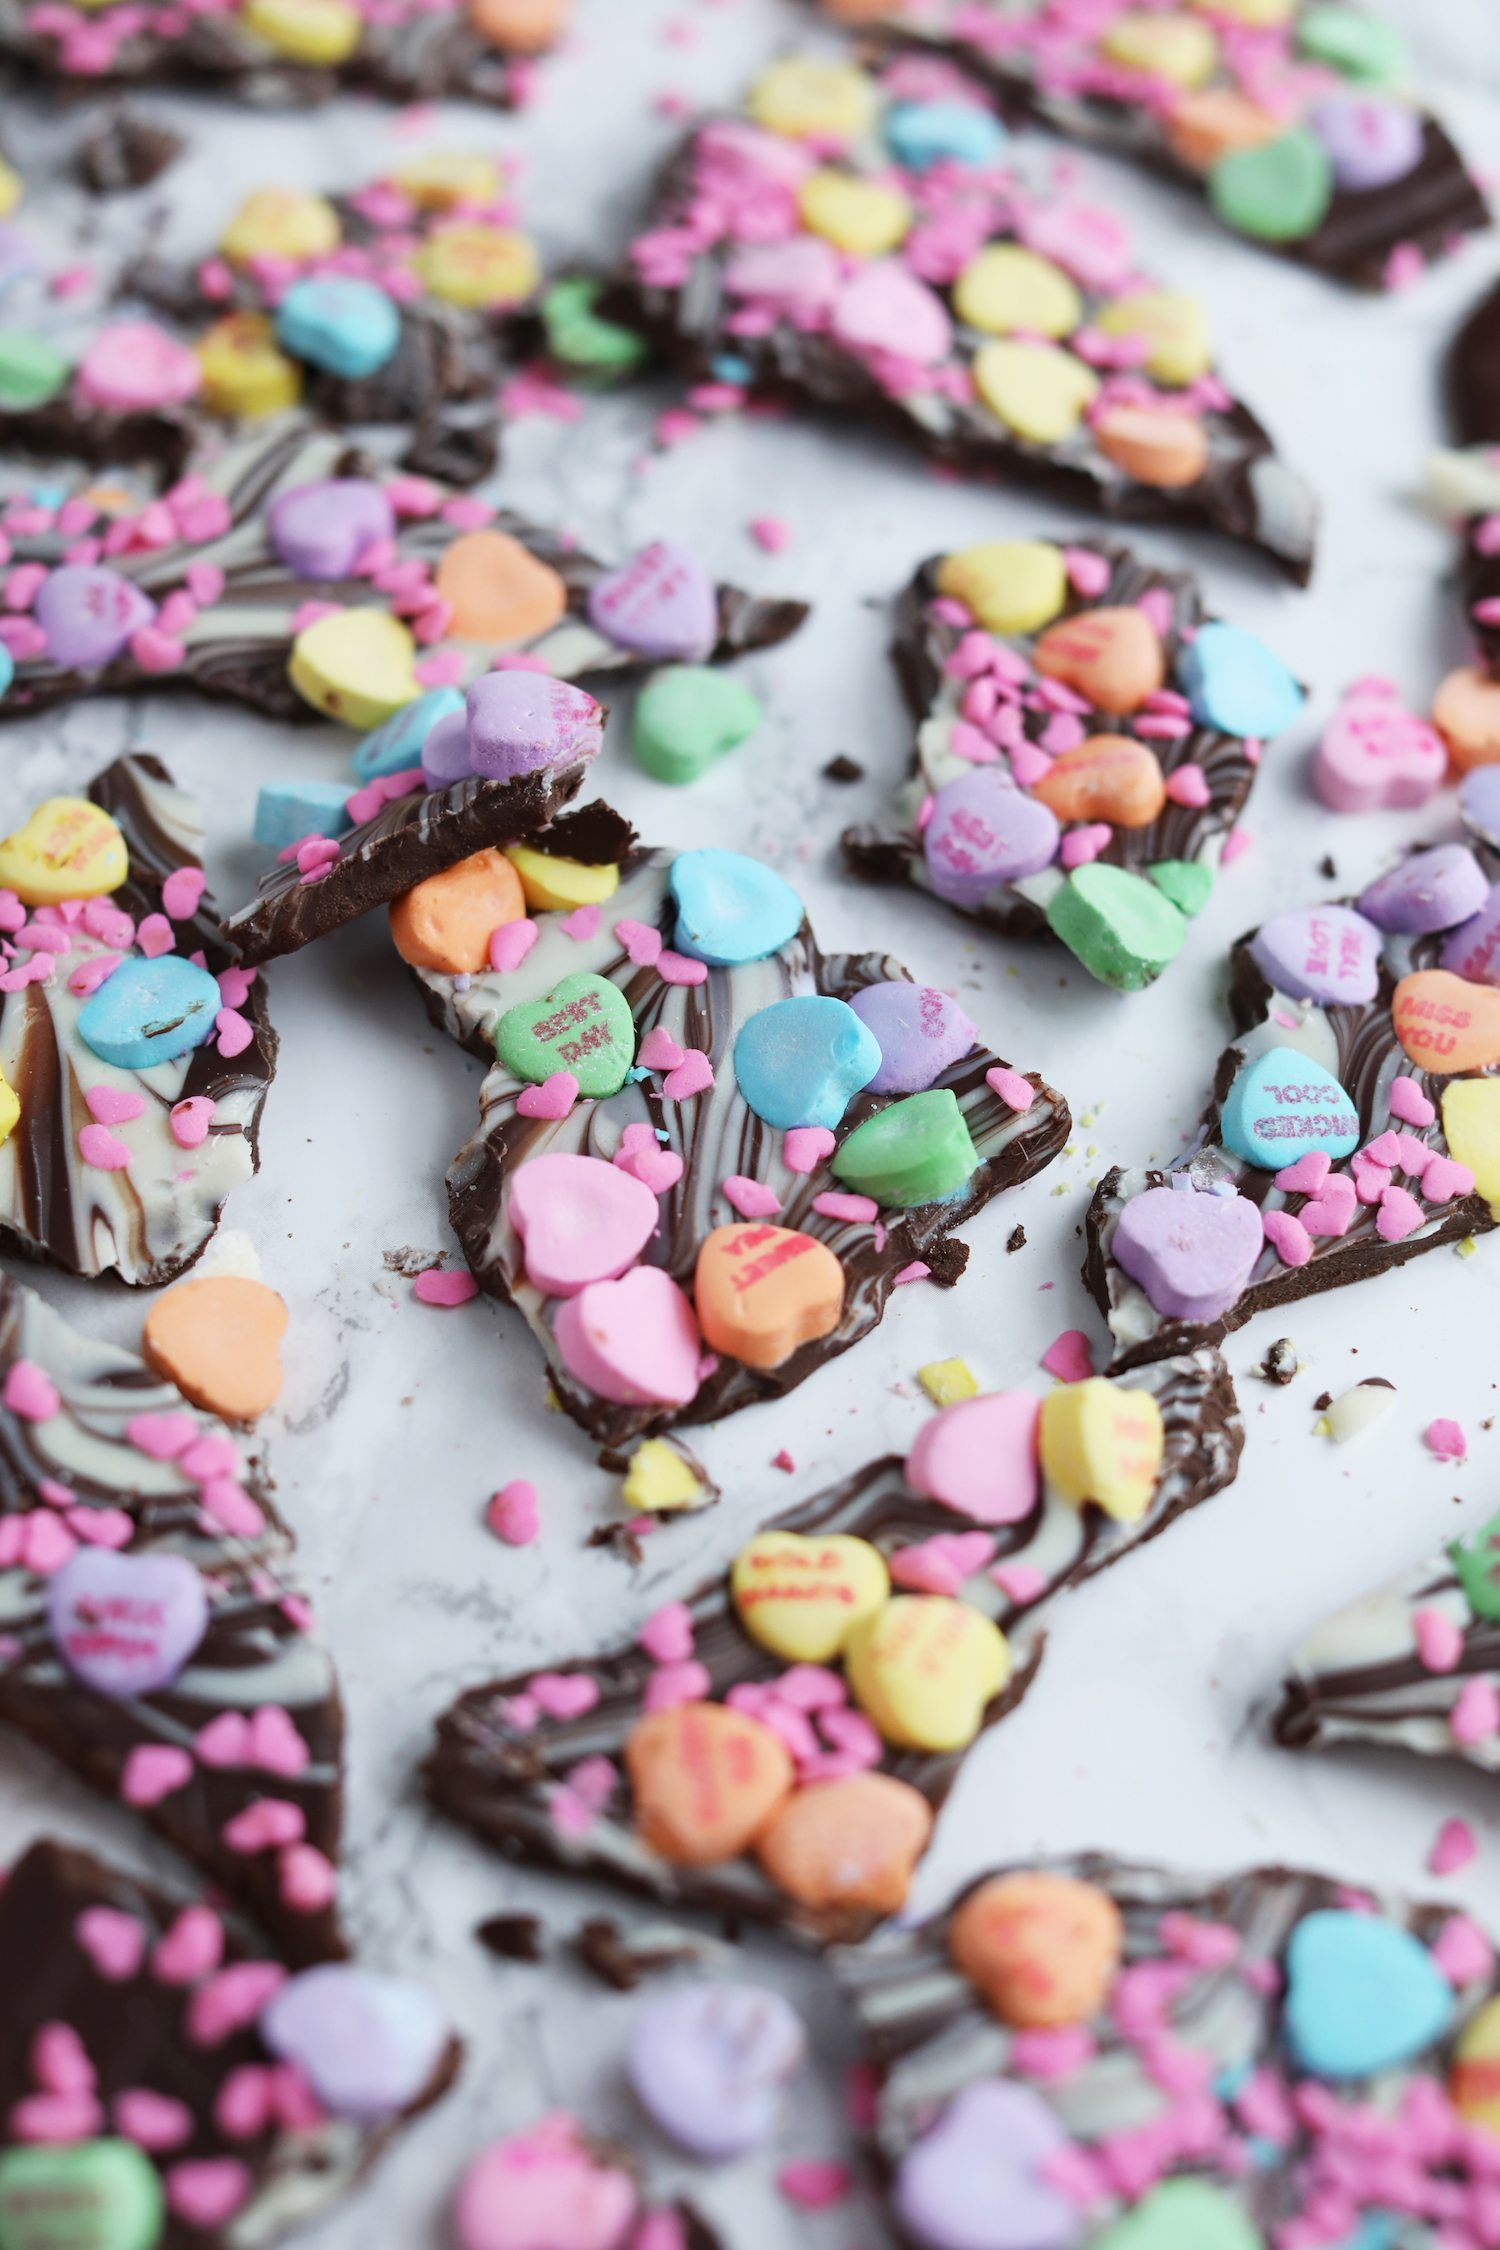 Easy Valentine's Day Gift Ideas | Valentine's Day Chocolate Bark Recipe from @cydconverse - Click through for loads of Valentine's Day DIY ideas, recipes and more!